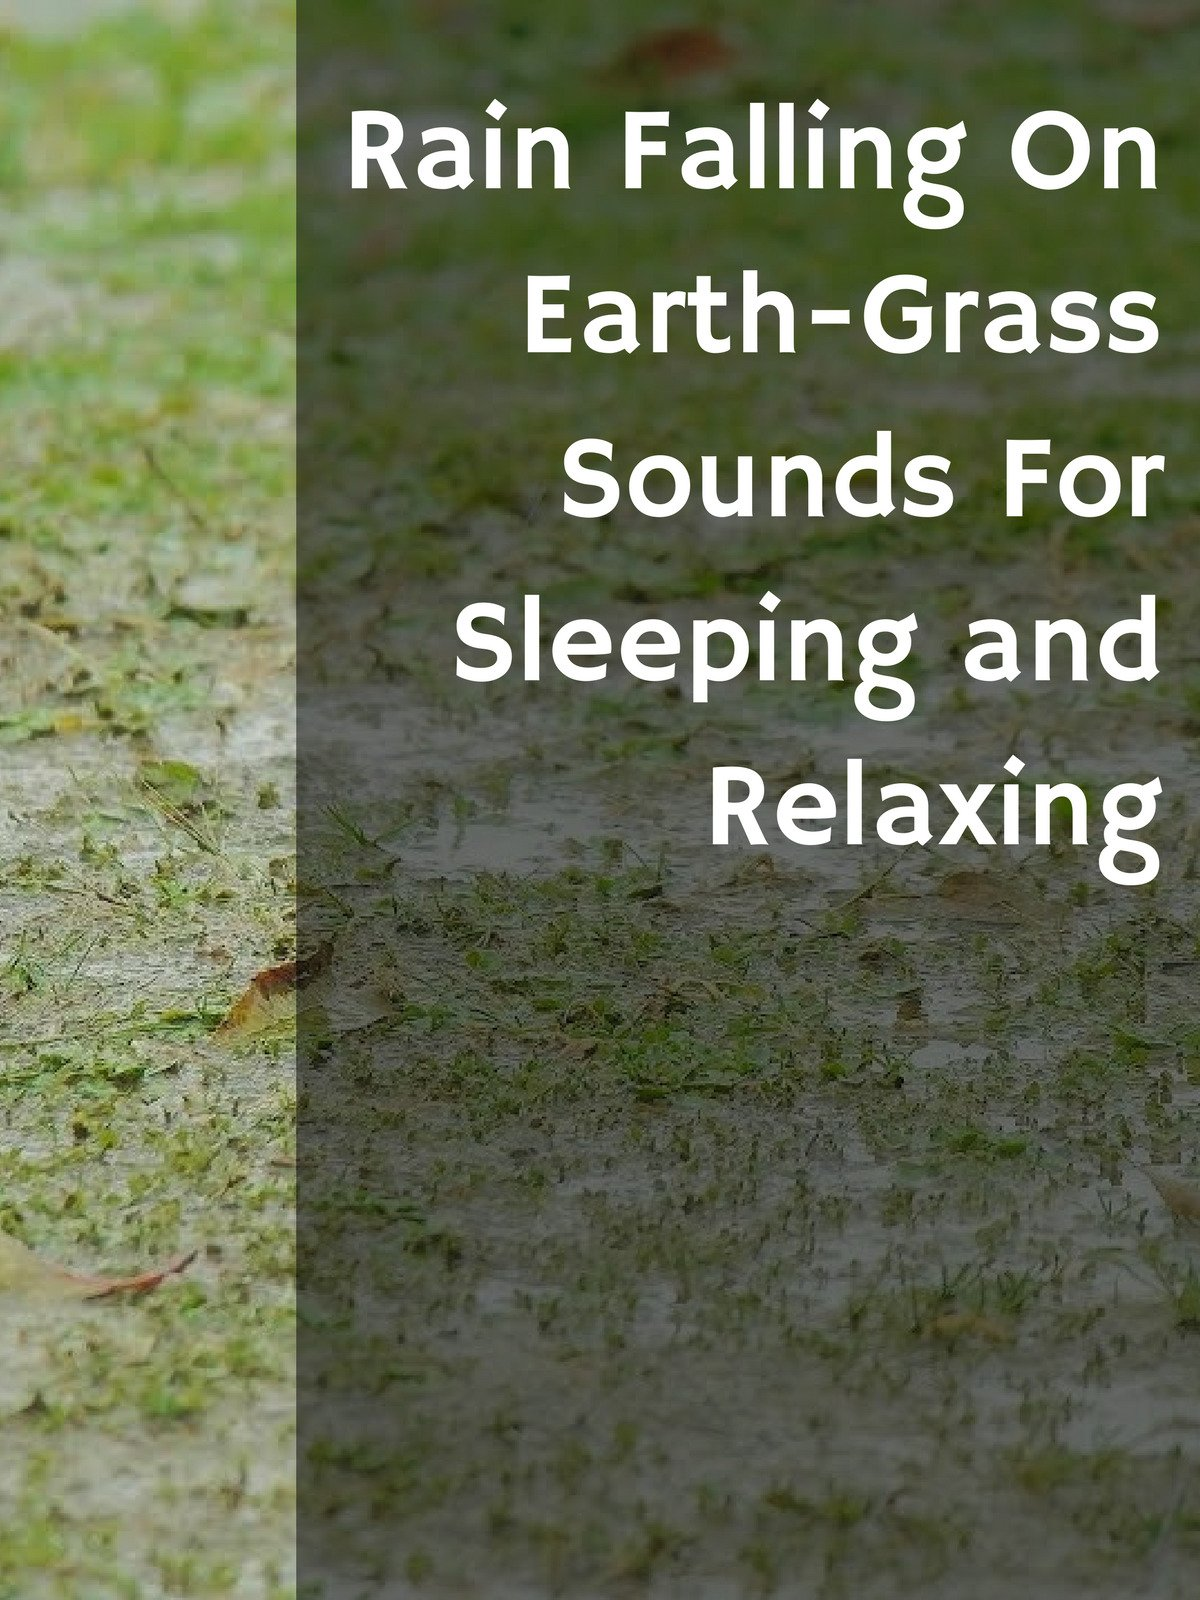 Rain Falling On Earth-Grass Sounds For Sleeping, and Relaxing